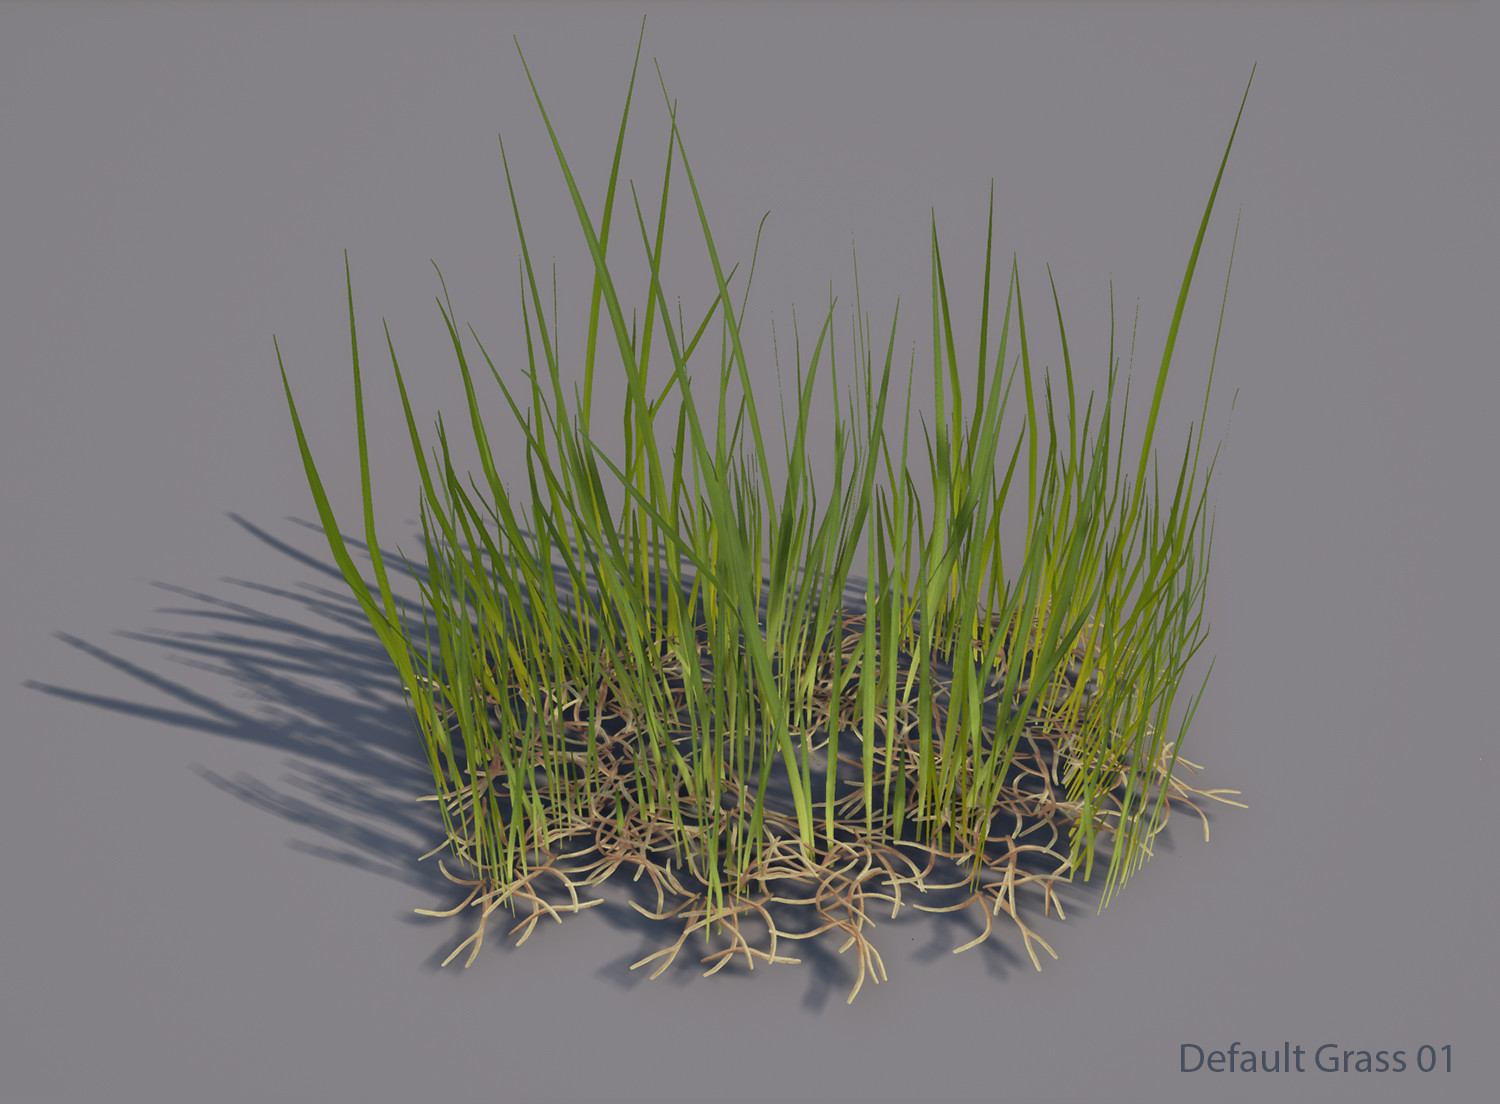 Christoffer radsby default grass 01